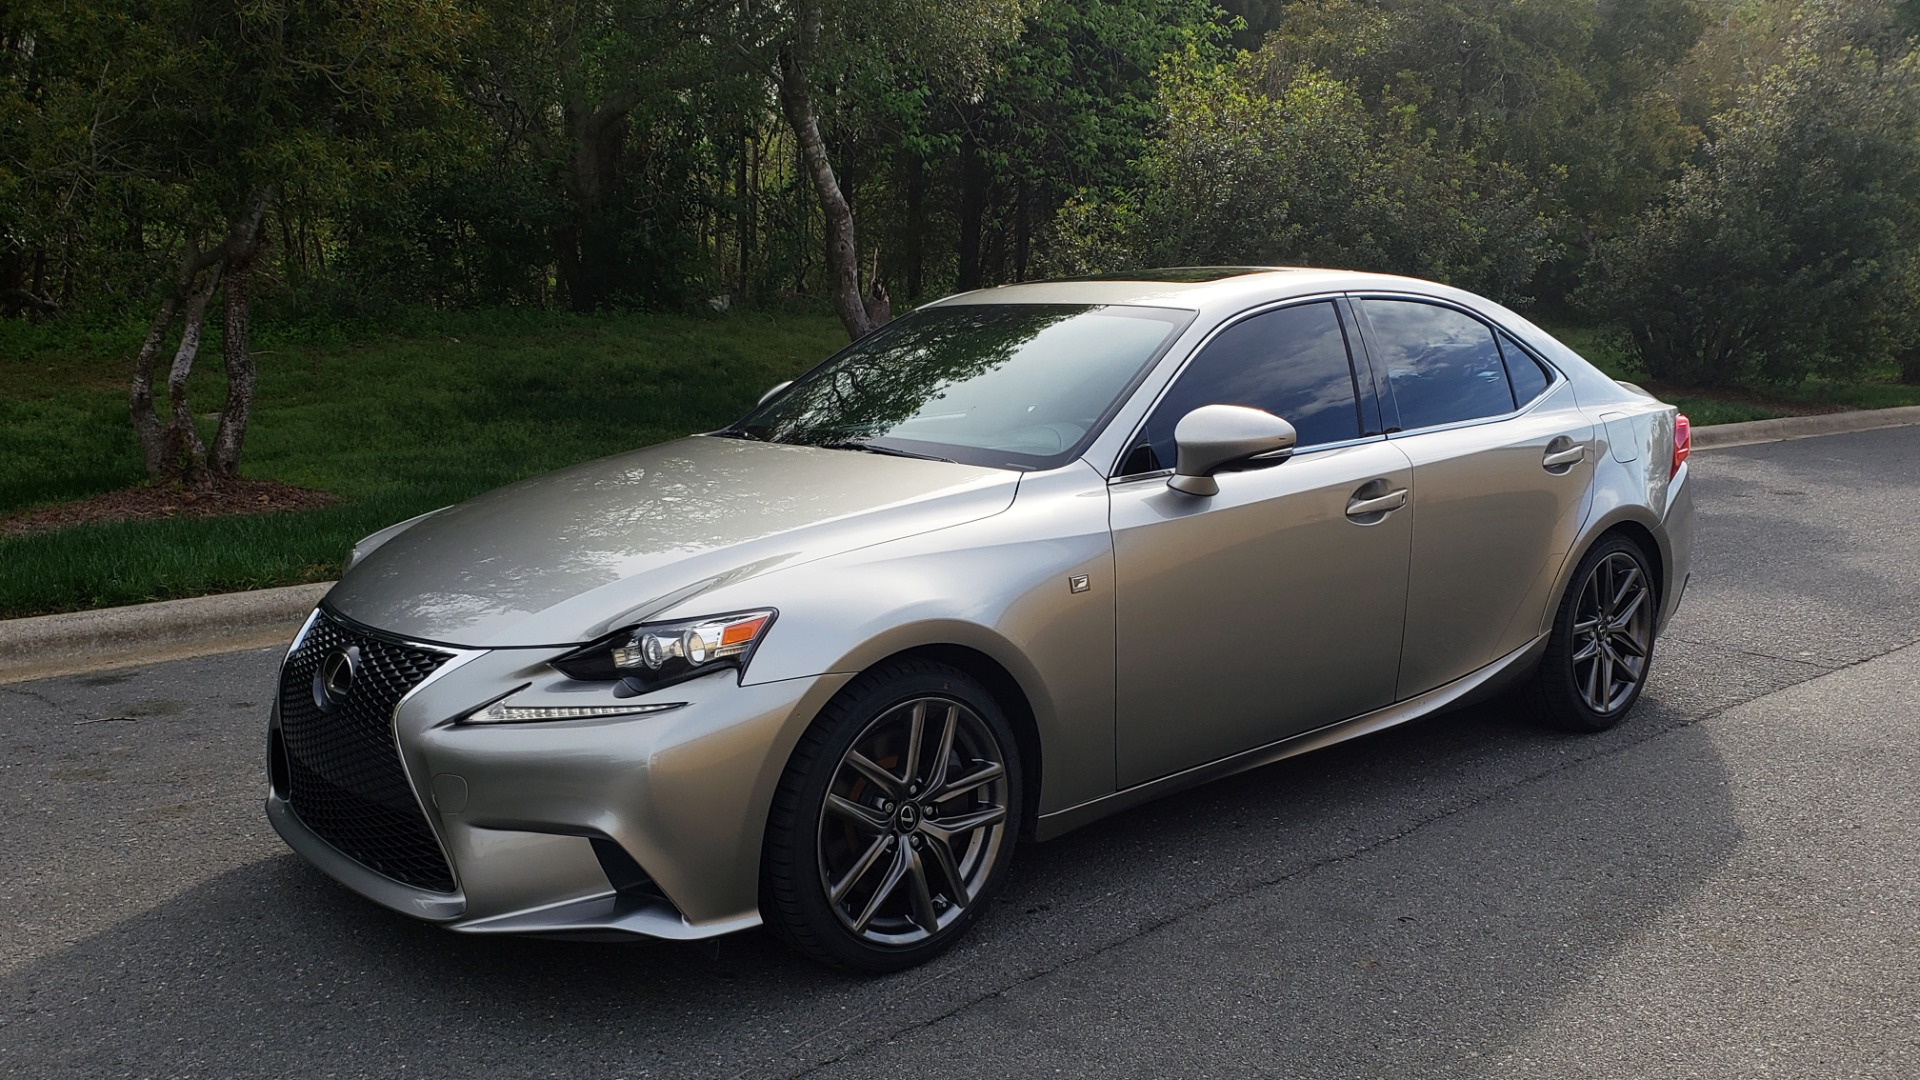 Used 2016 Lexus IS 200T F-SPORT / BSM / SUNROOF / VENTILATED SEATS / REARVIEW for sale Sold at Formula Imports in Charlotte NC 28227 1